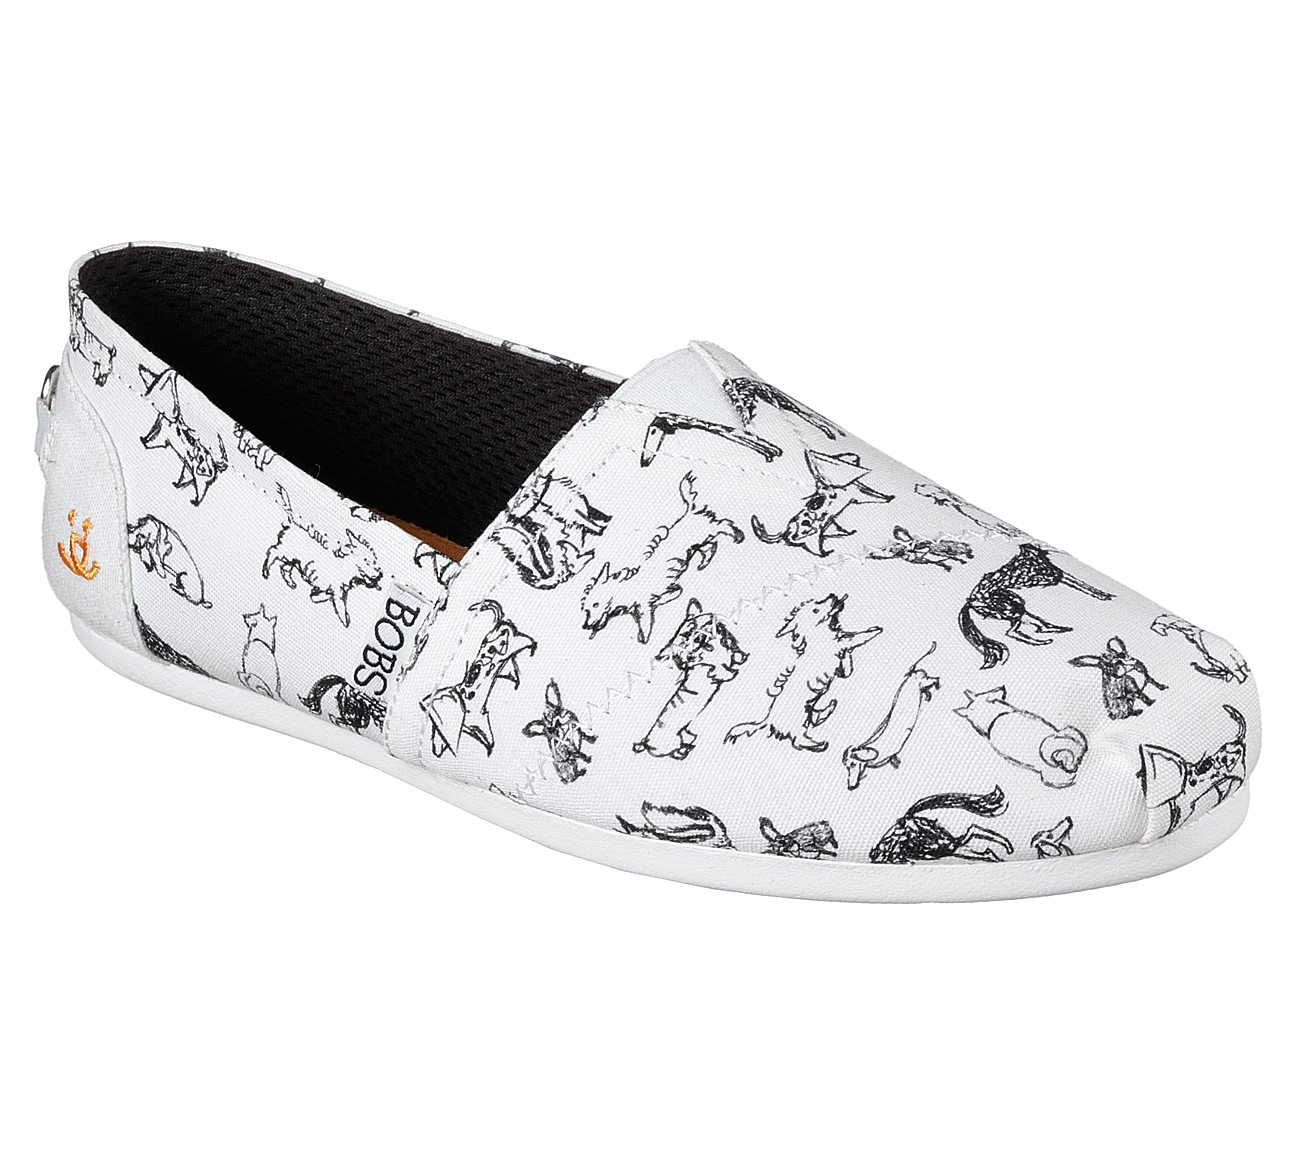 Skechers Bobs for Dogs Partners with Best Friends Animal